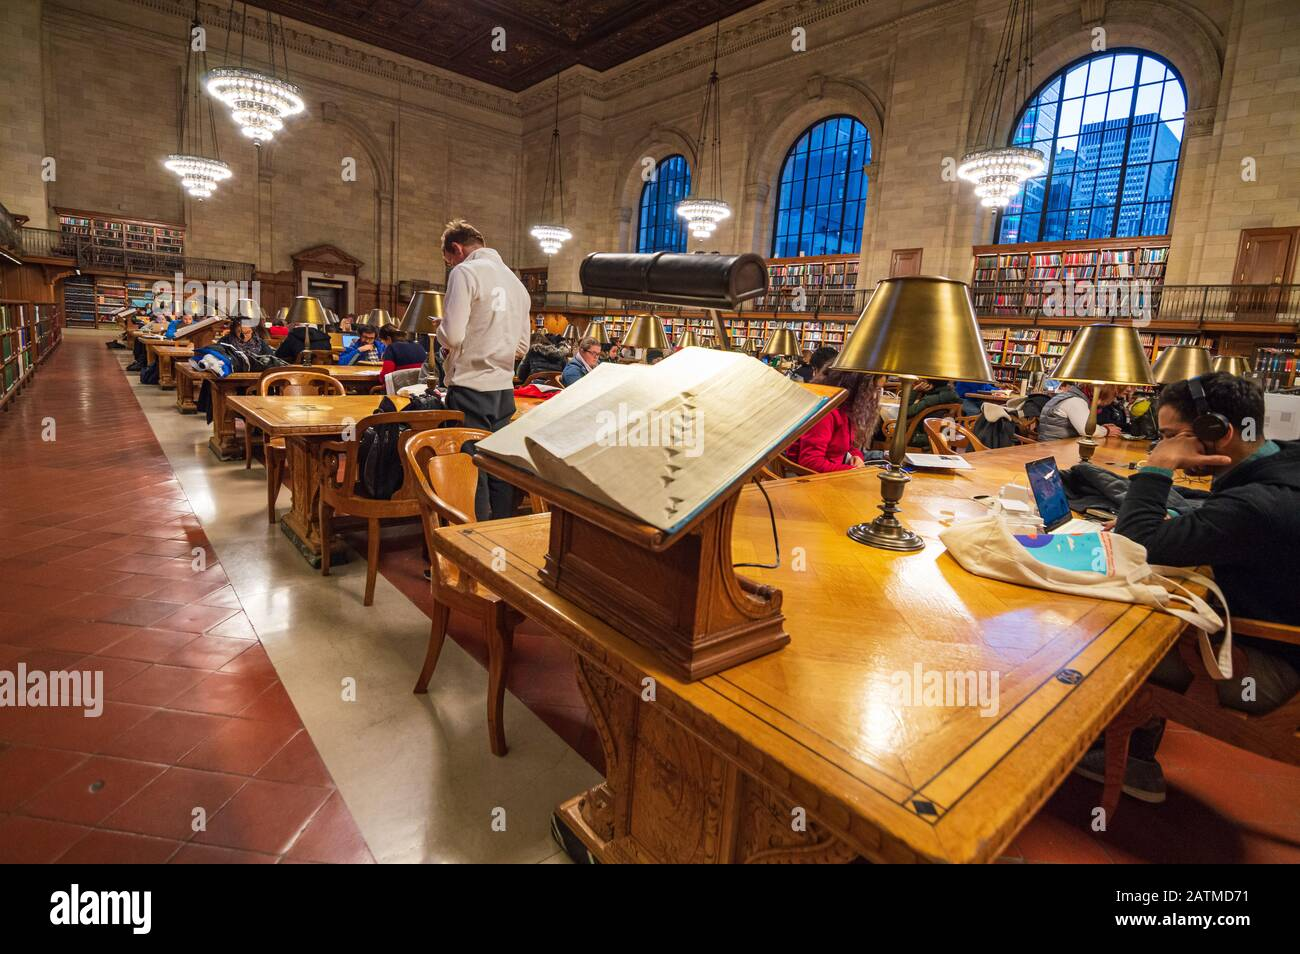 New York City, USA - December 27, 2017: Readers in The New York Public Library est. 1902. Manhattan, NYC. Stock Photo